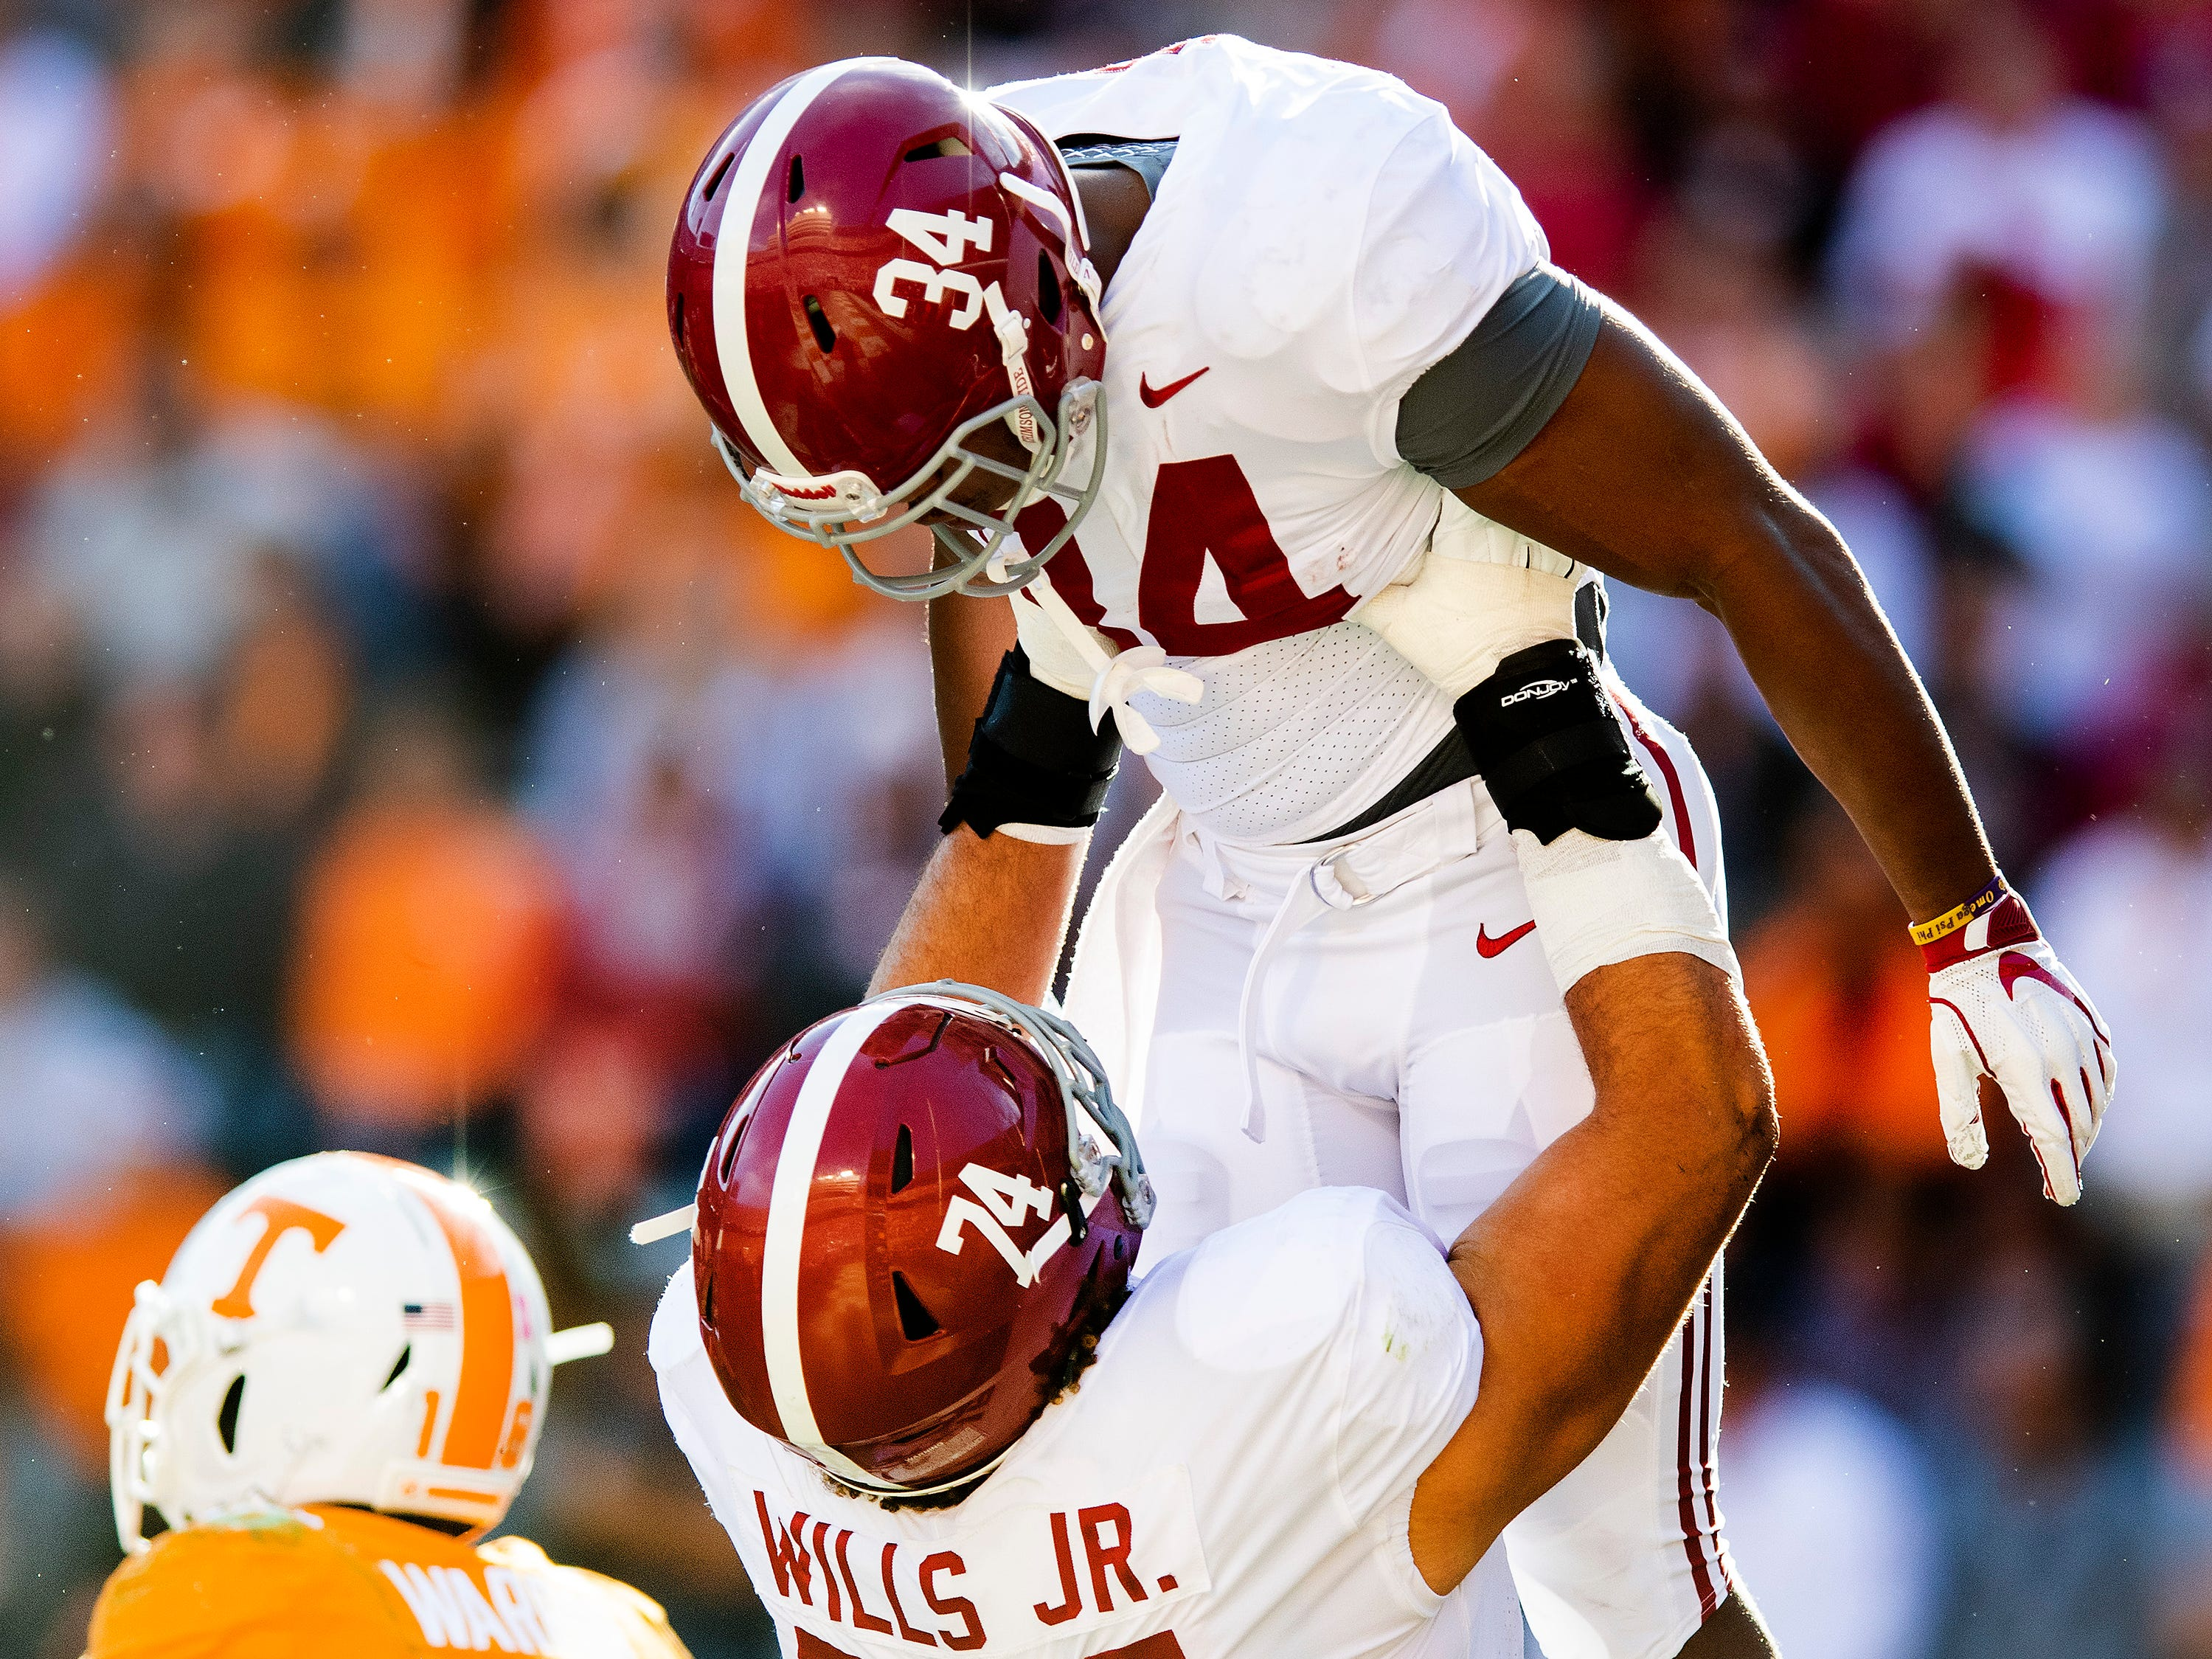 Alabama running back Damien Harris (34) is lifted by offensive lineman Jedrick Wills, Jr., (74) after scoring a touchdown in first half action at Neyland Stadium in Knoxville, Tn., on Saturday October 20, 2018.